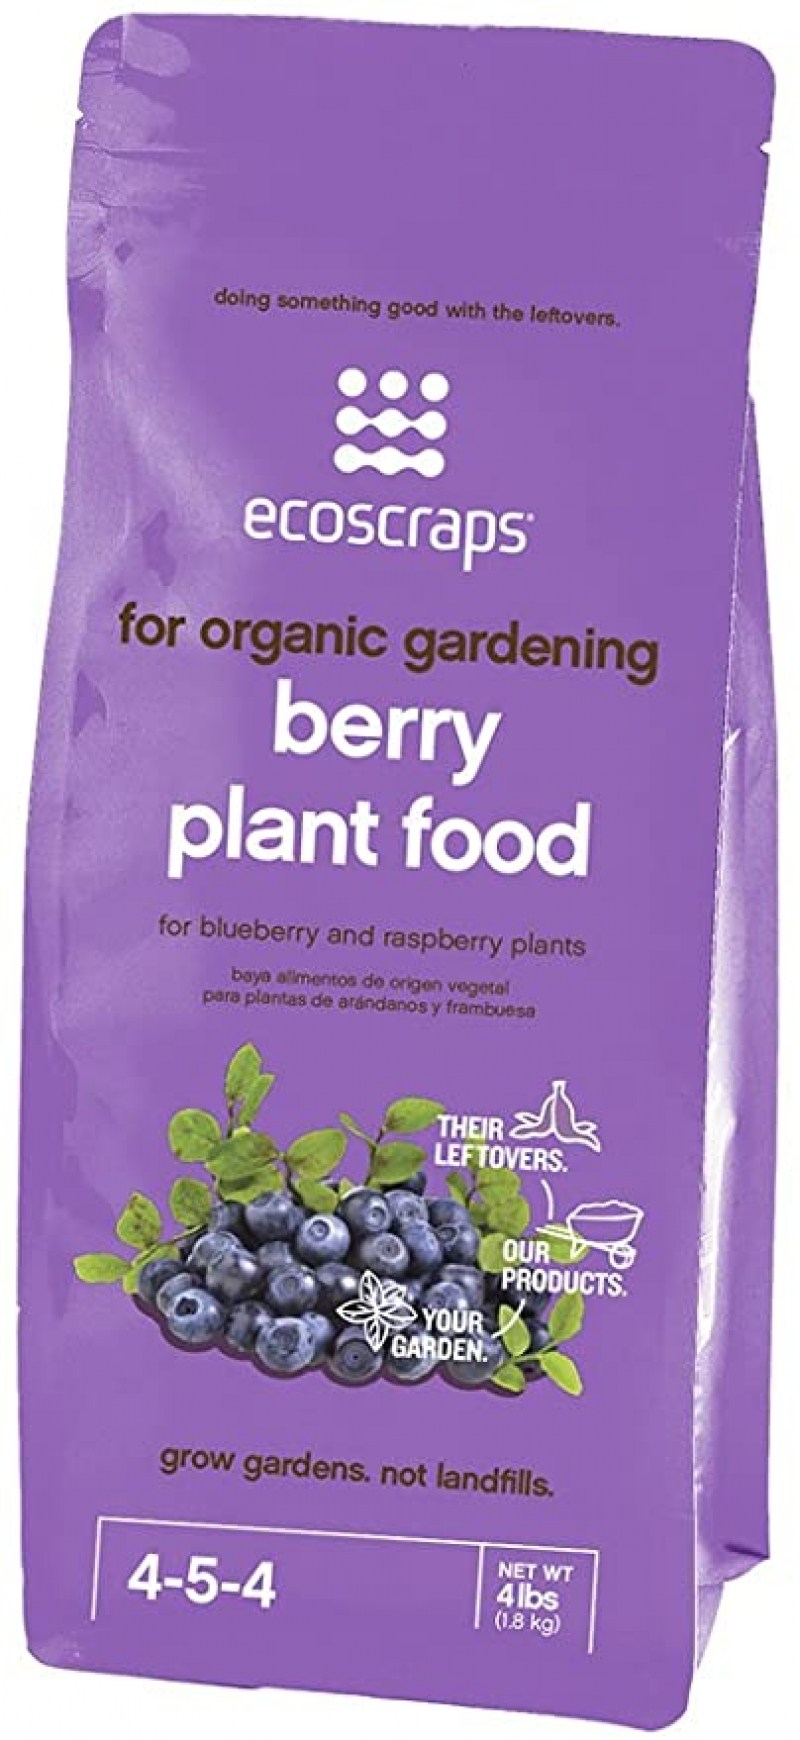 ihocon: EcoScraps for Organic Gardening Berry Plant Food, 4 lbs 藍莓等漿果植物肥料